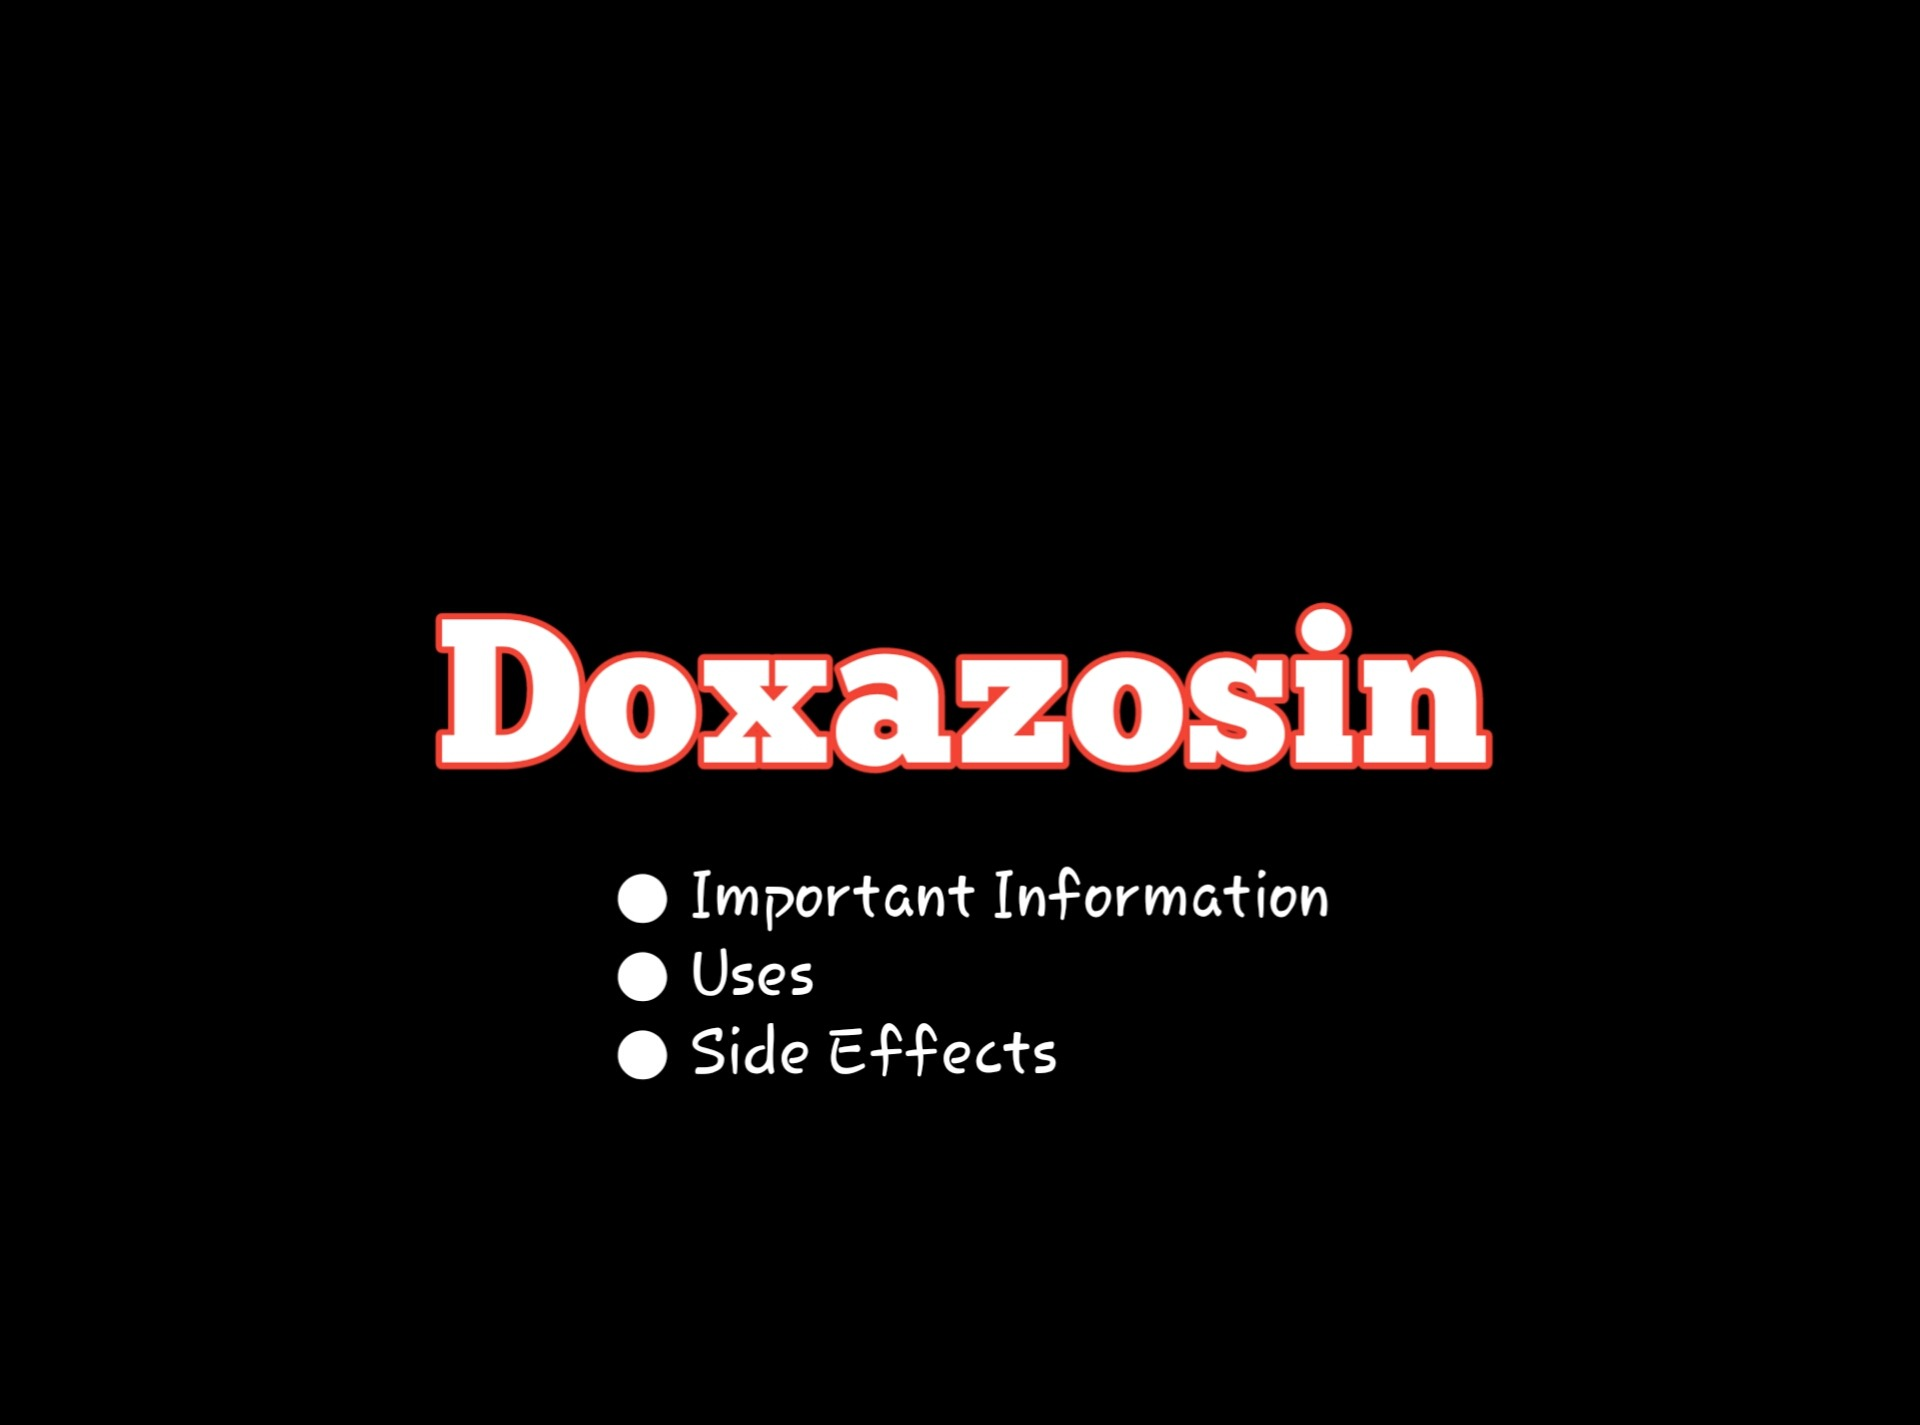 Important Information About Doxazosin